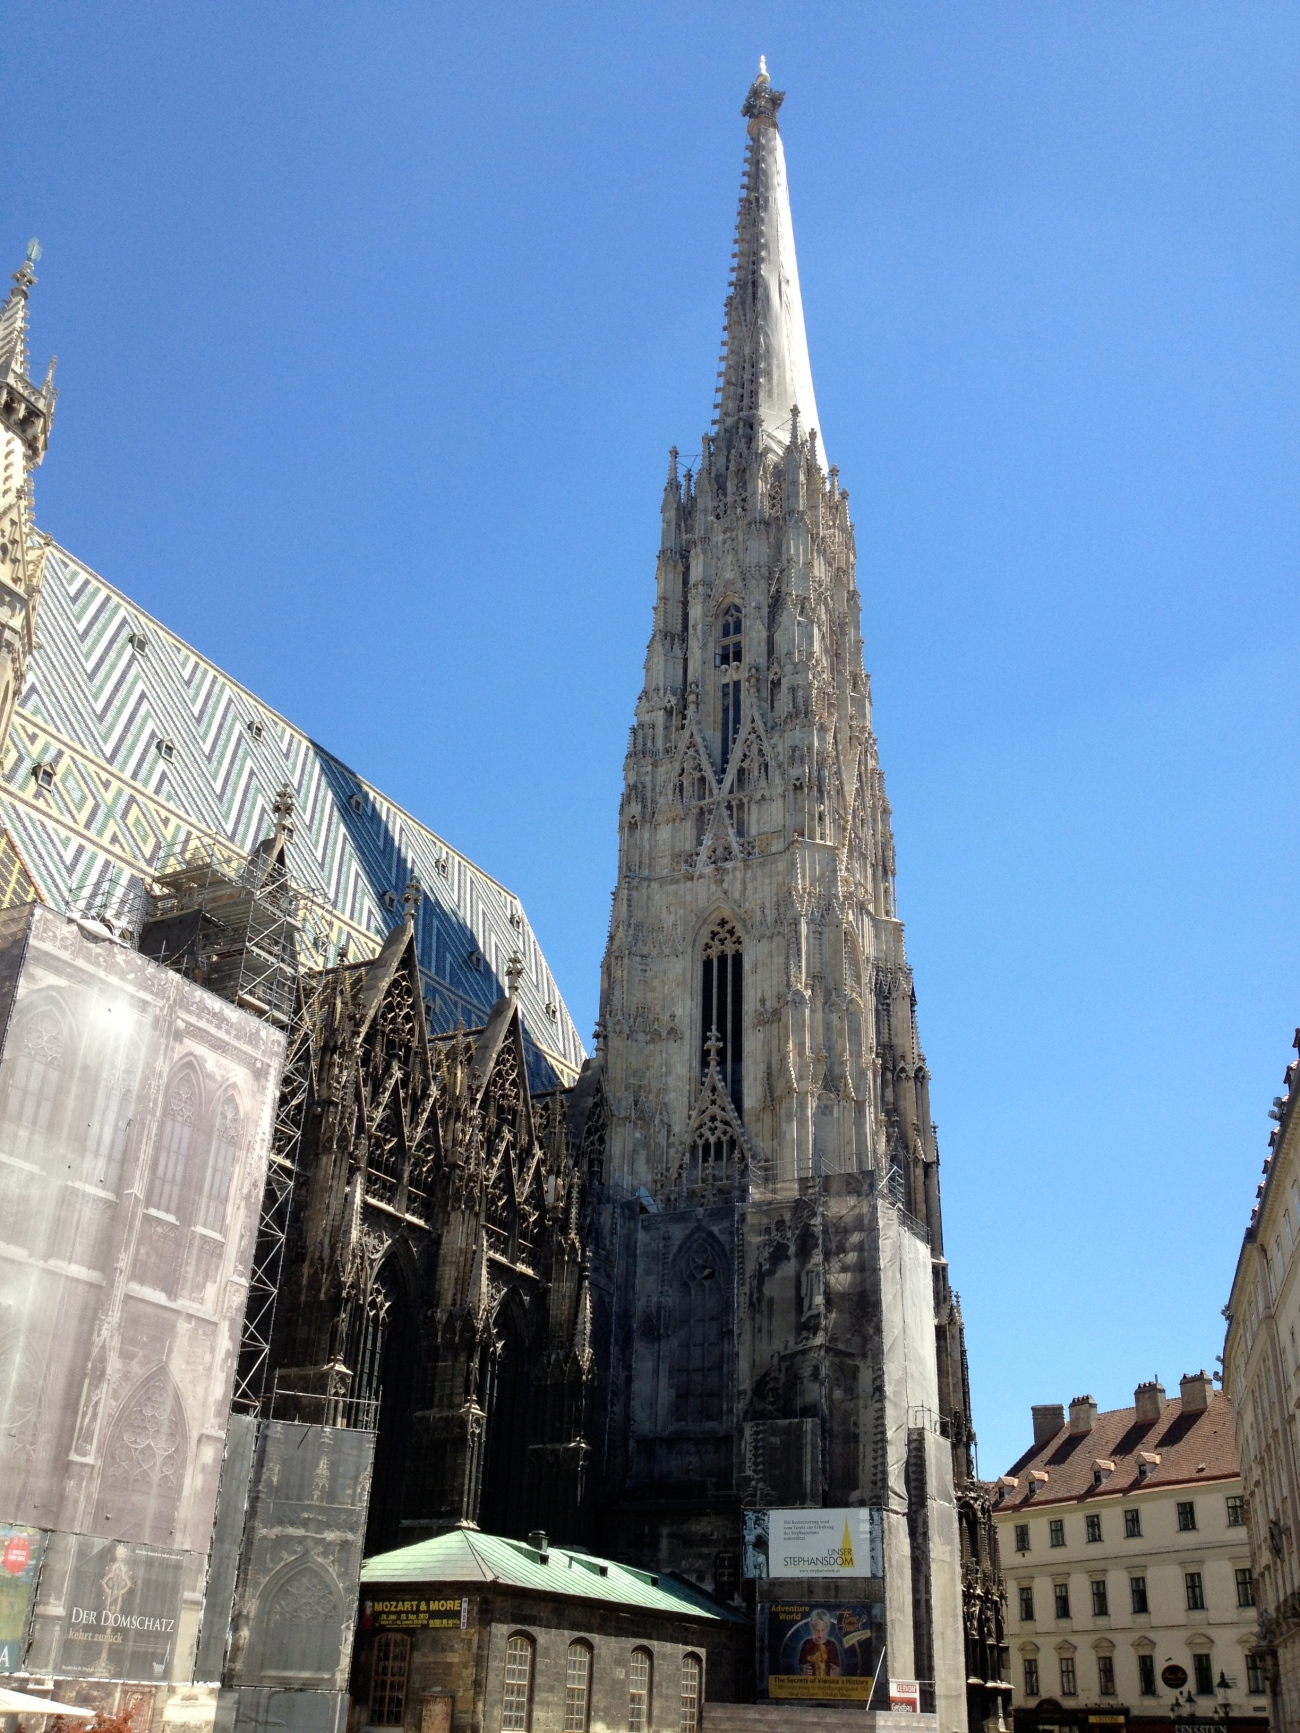 Things always look taller when you stand next to them. From France you can barely see this spire.